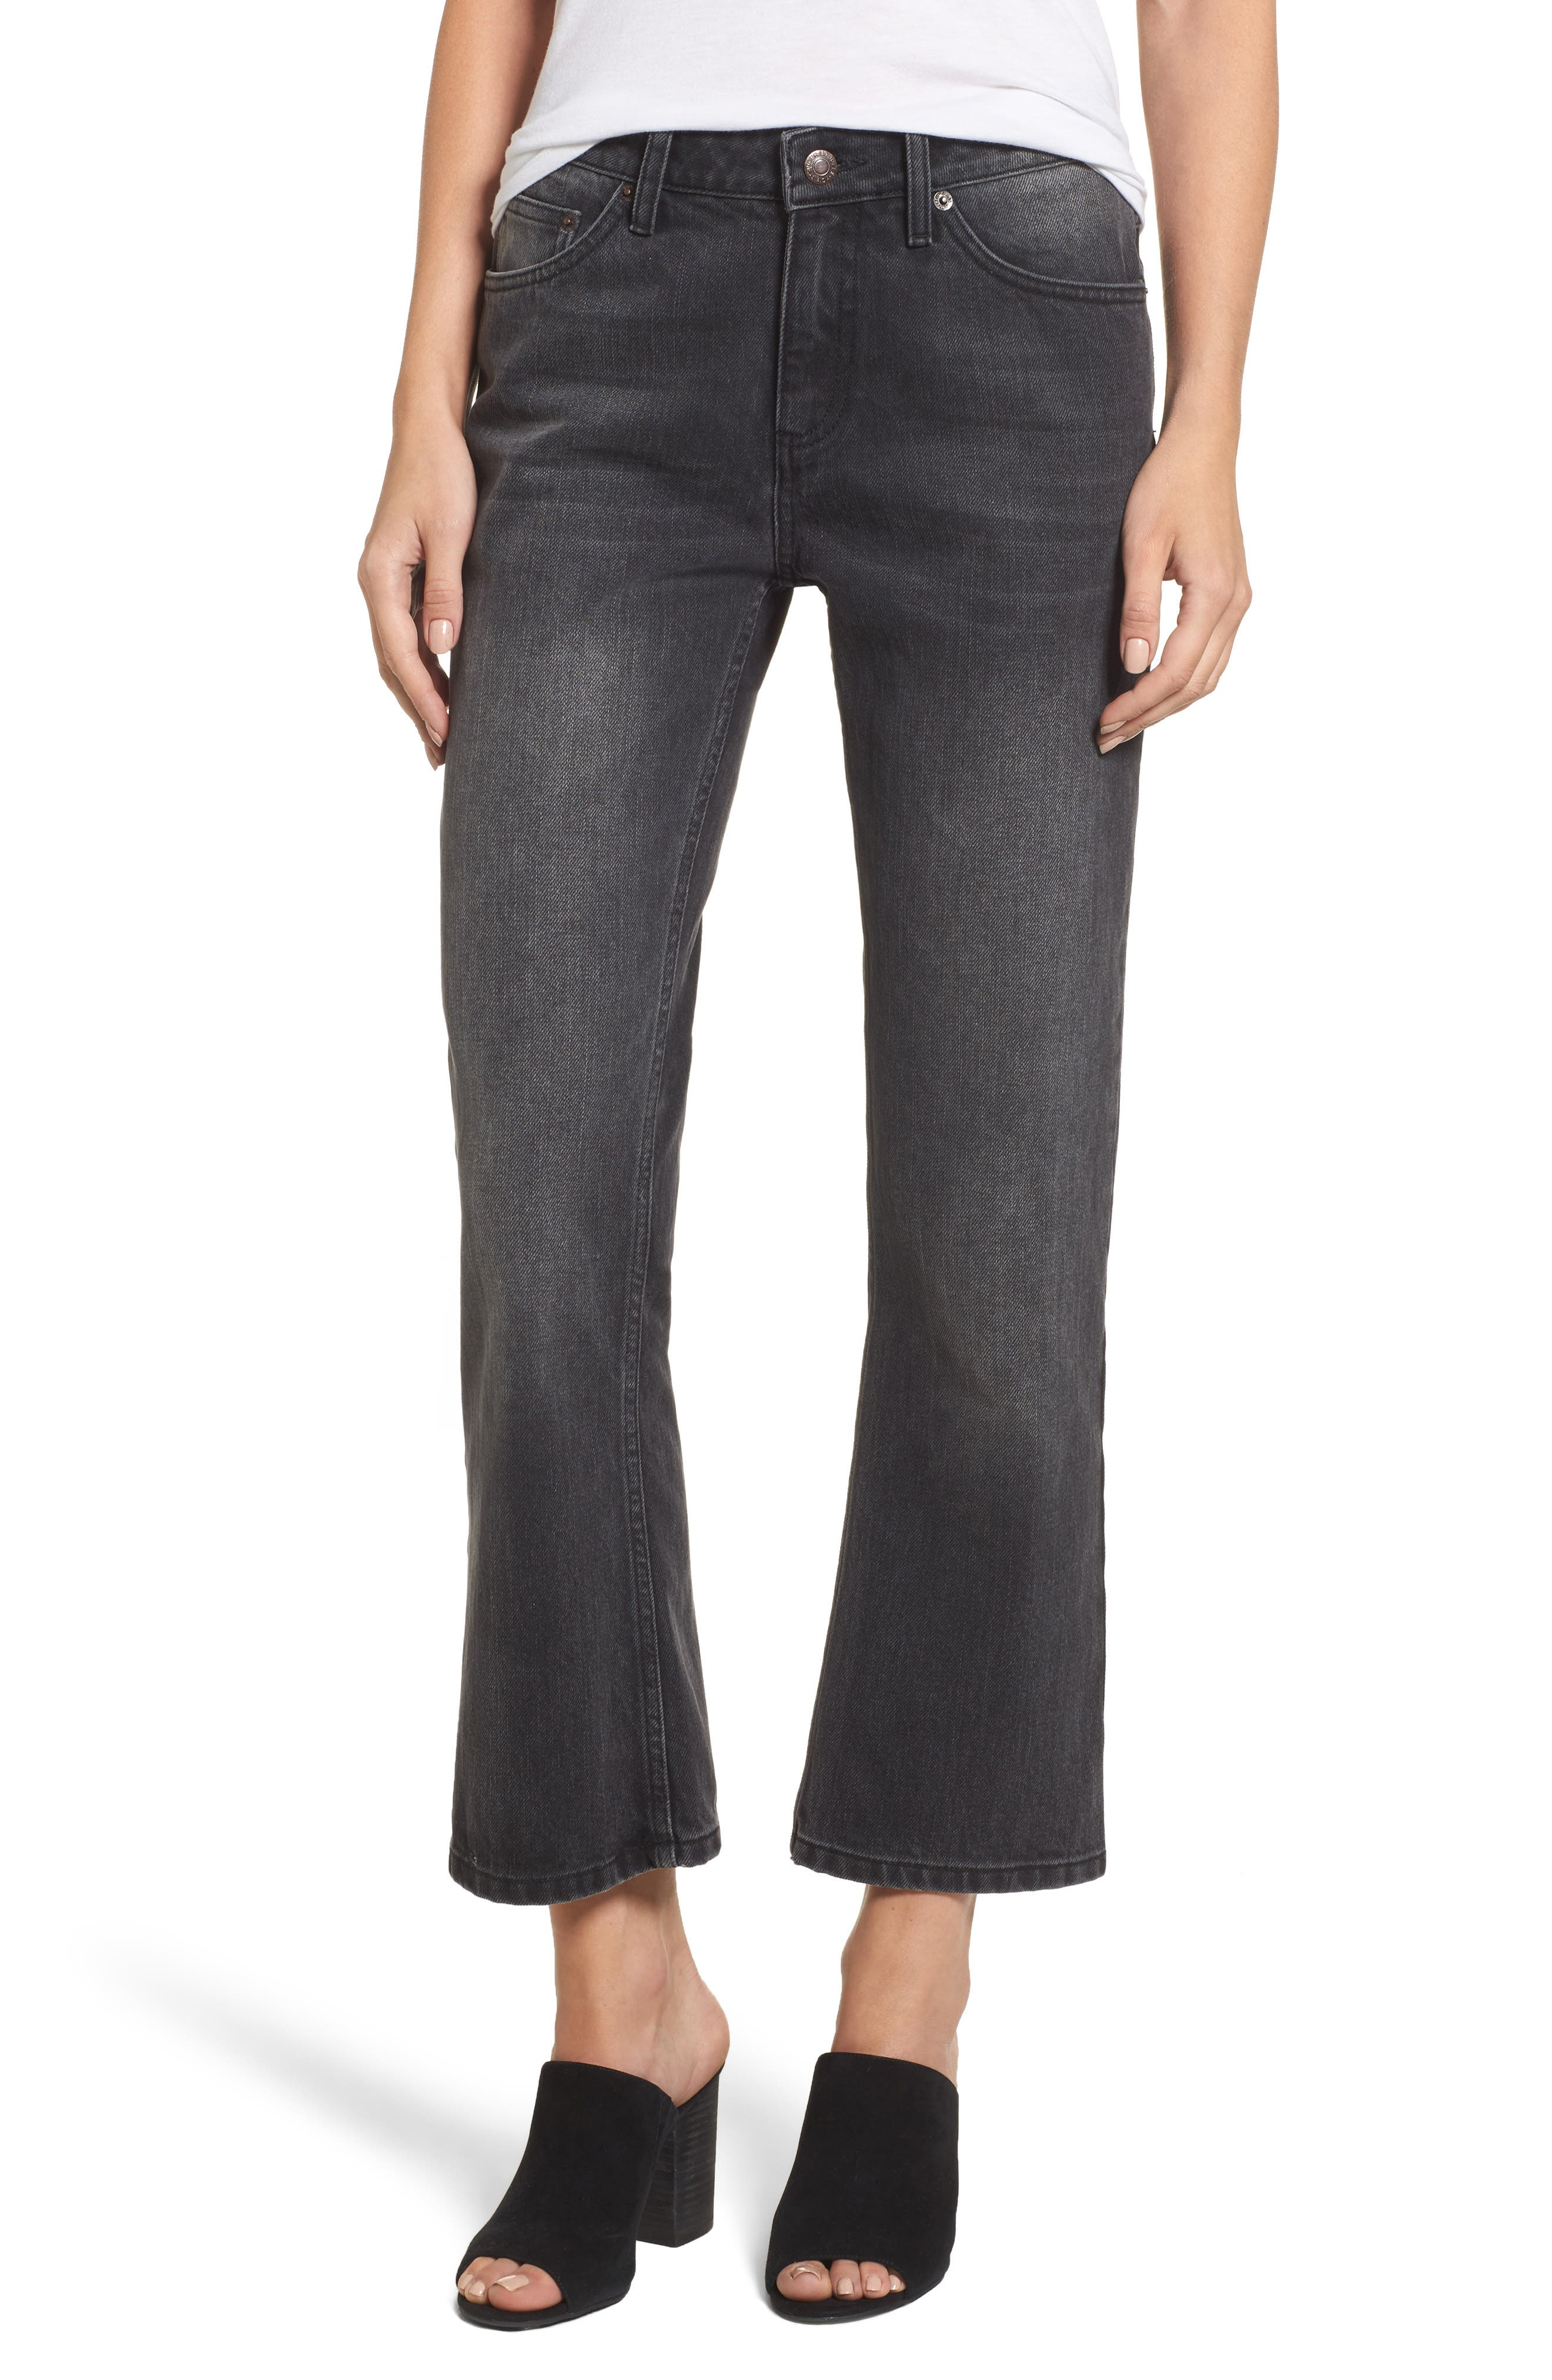 Main Image - Sincerely Jules High Waist Crop Flare Jeans (Washed Black)